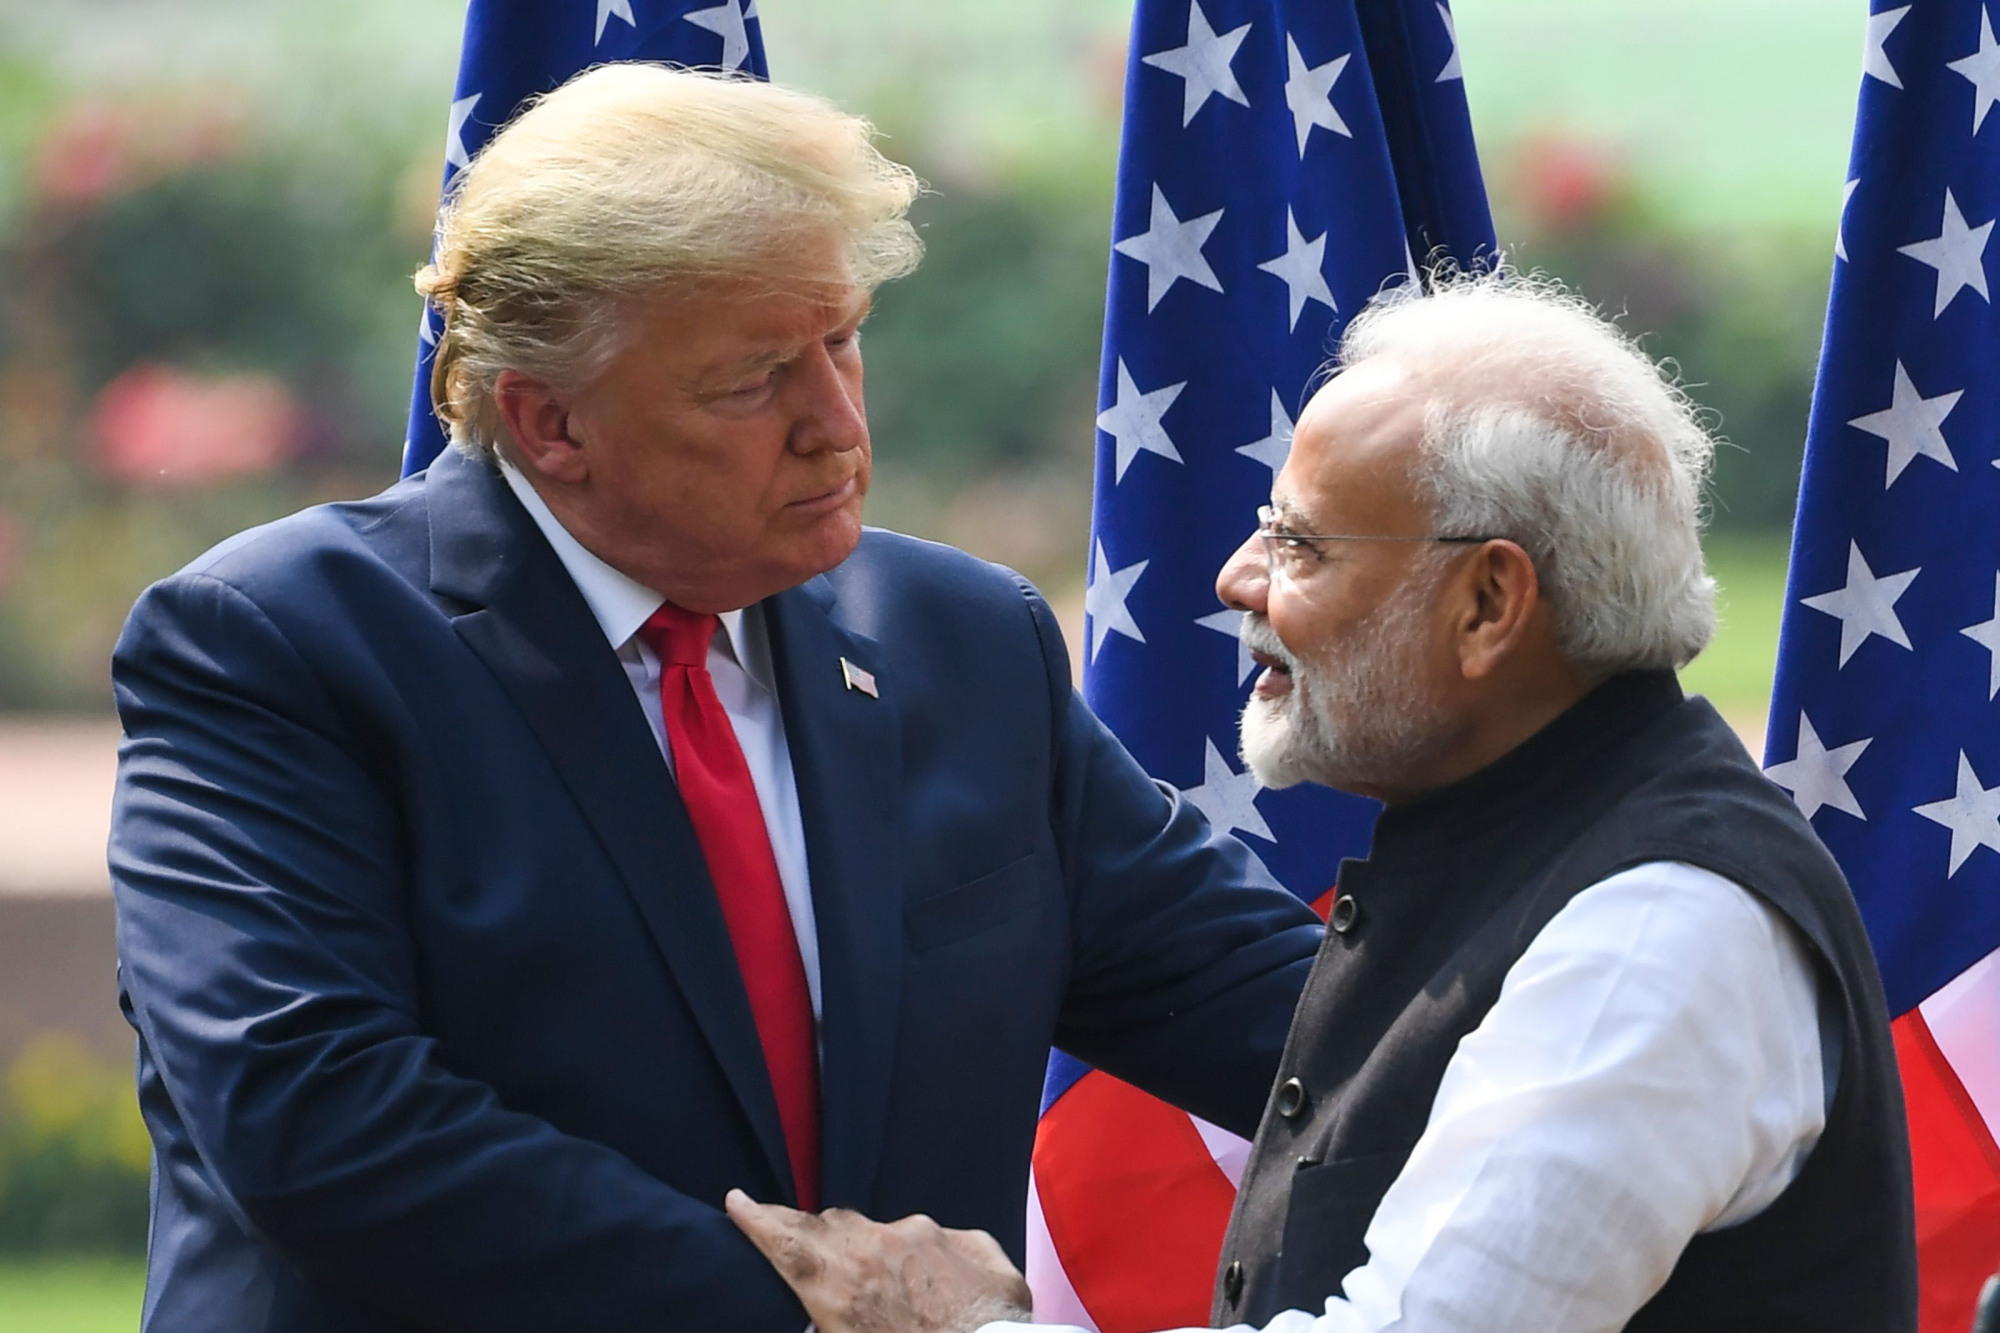 U.S. President Donald Trump and Indian Prime Minister Narendra Modi hold a joint news conference at Hyderabad House in New Delhi on Tuesday. | AFP-JIJI